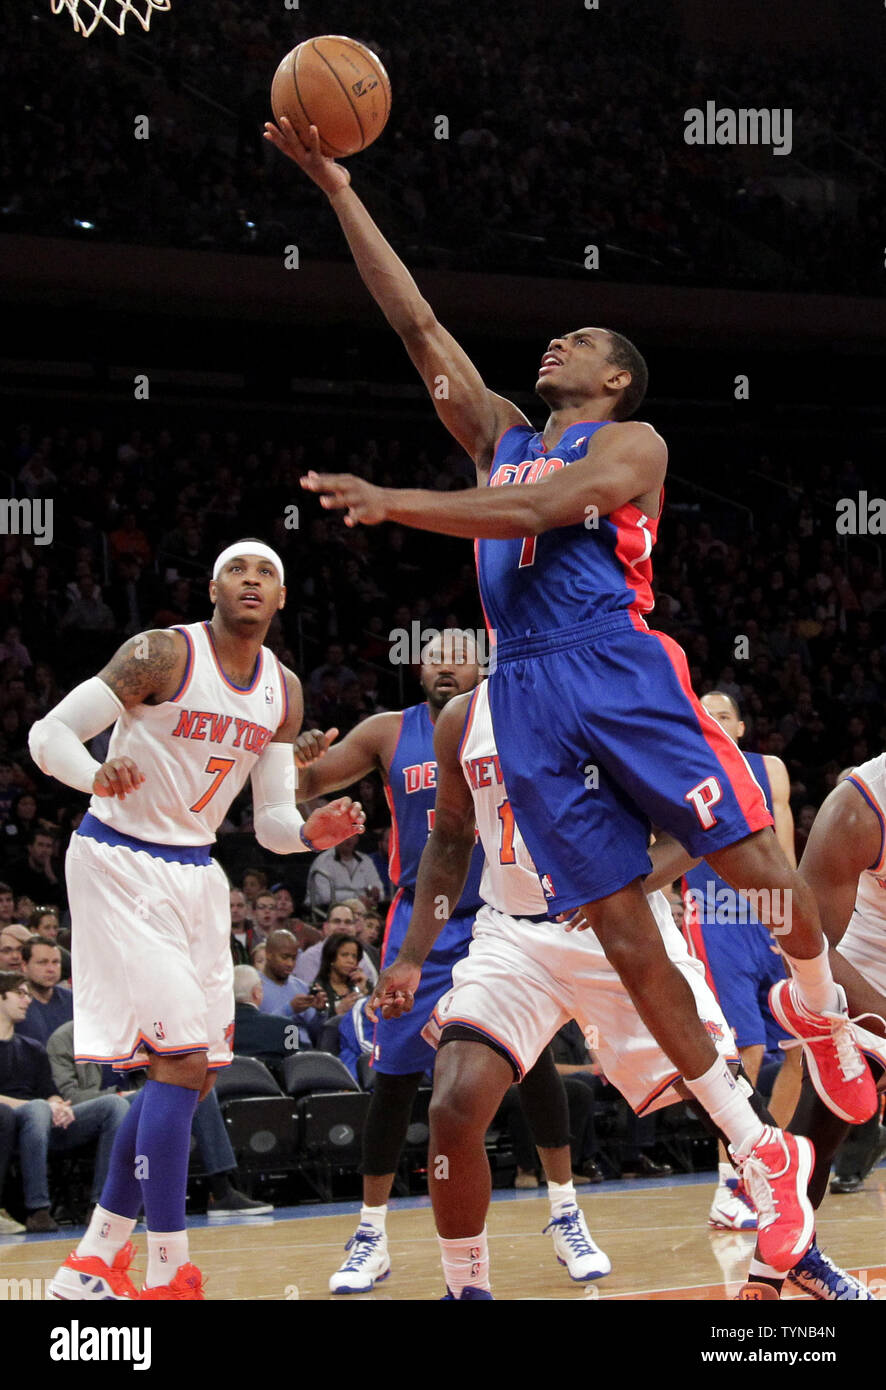 New York Knicks Carmelo Anthony watches Detroit Pistons Andre Drummond drive to the basket in the first quarter at Madison Square Garden in New York City on November 25, 2012.     UPI/John Angelillo Stock Photo